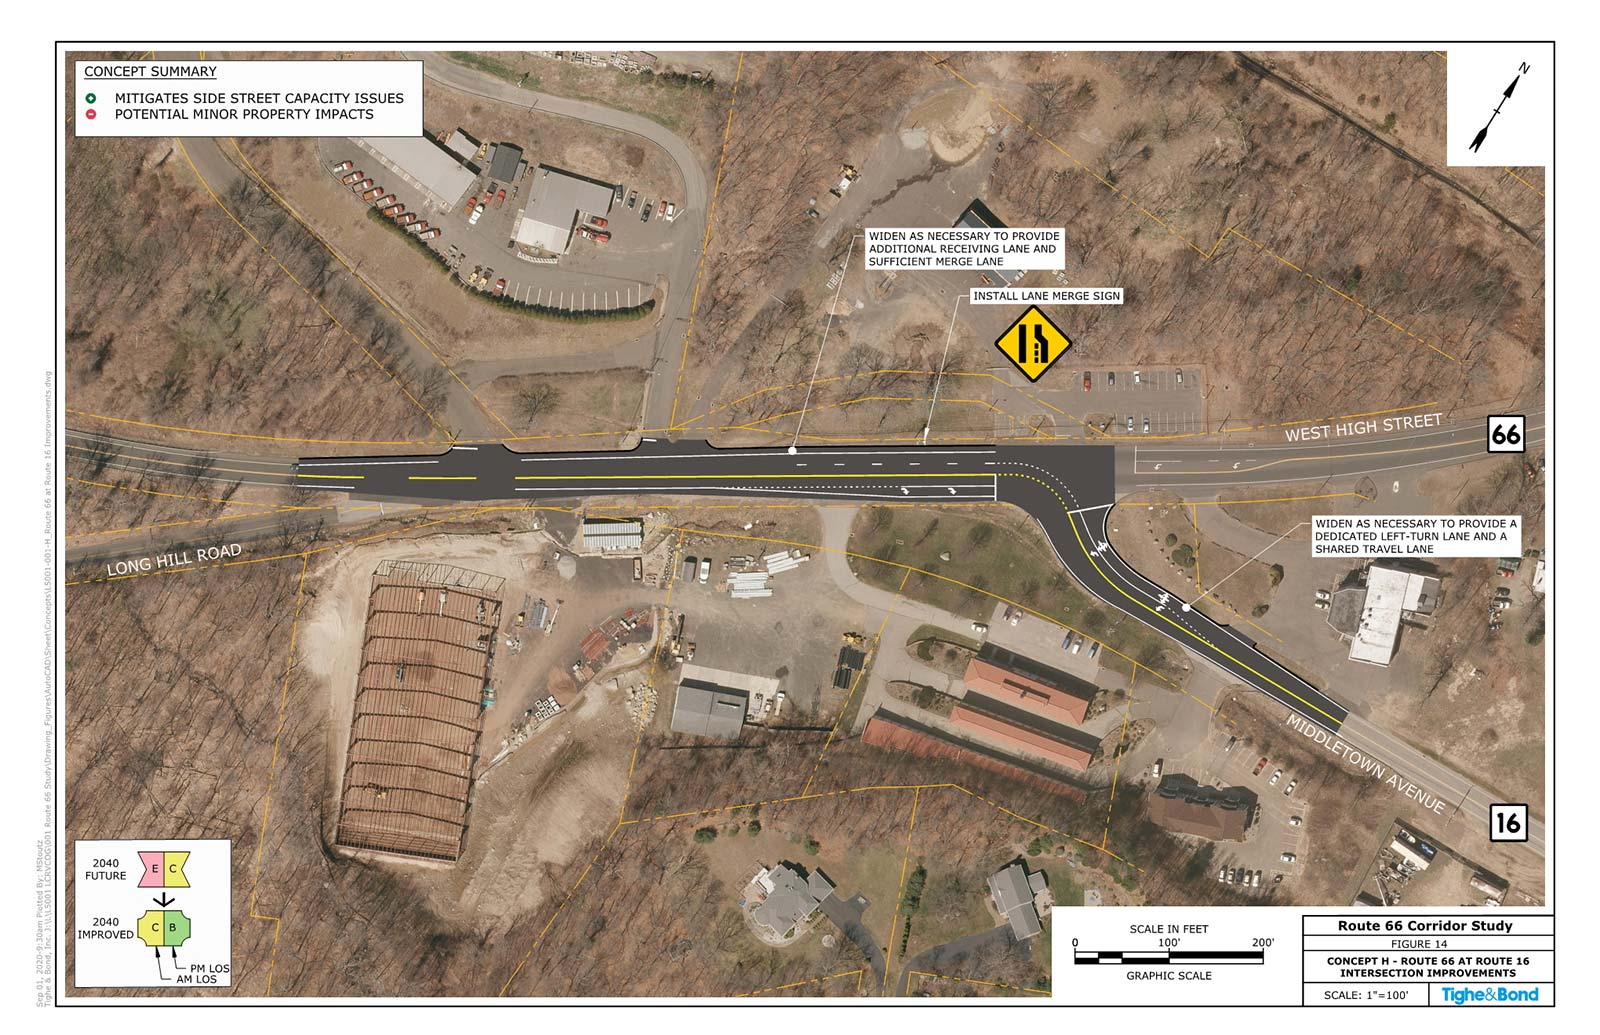 Route 66 at Route 16 and Park & Ride Driveway Intersection Improvements (Concept H). Route 66 Transportation Study, Portland and East Hampton, CT.